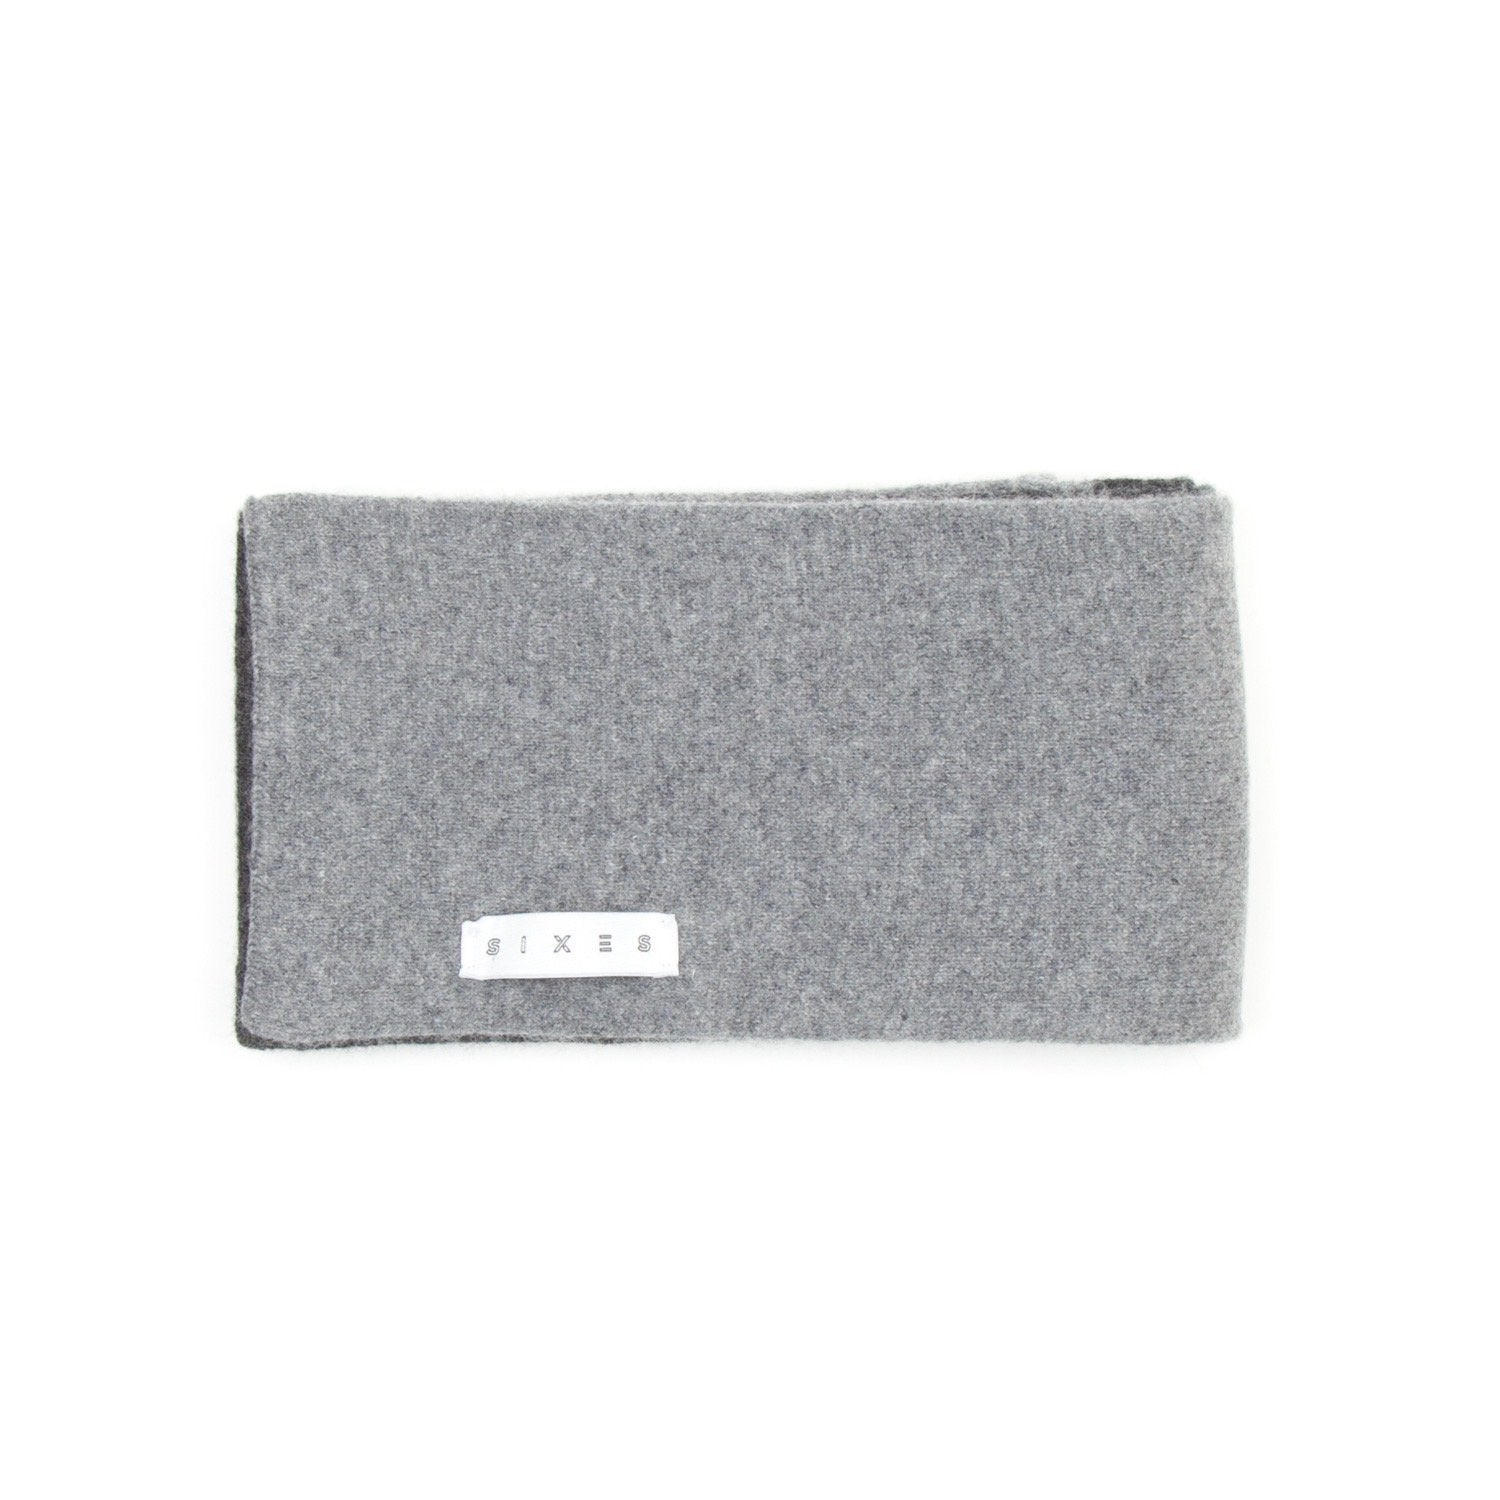 SIXES Lambswool Two Tone Scarf (Charcoal & Grey) 1